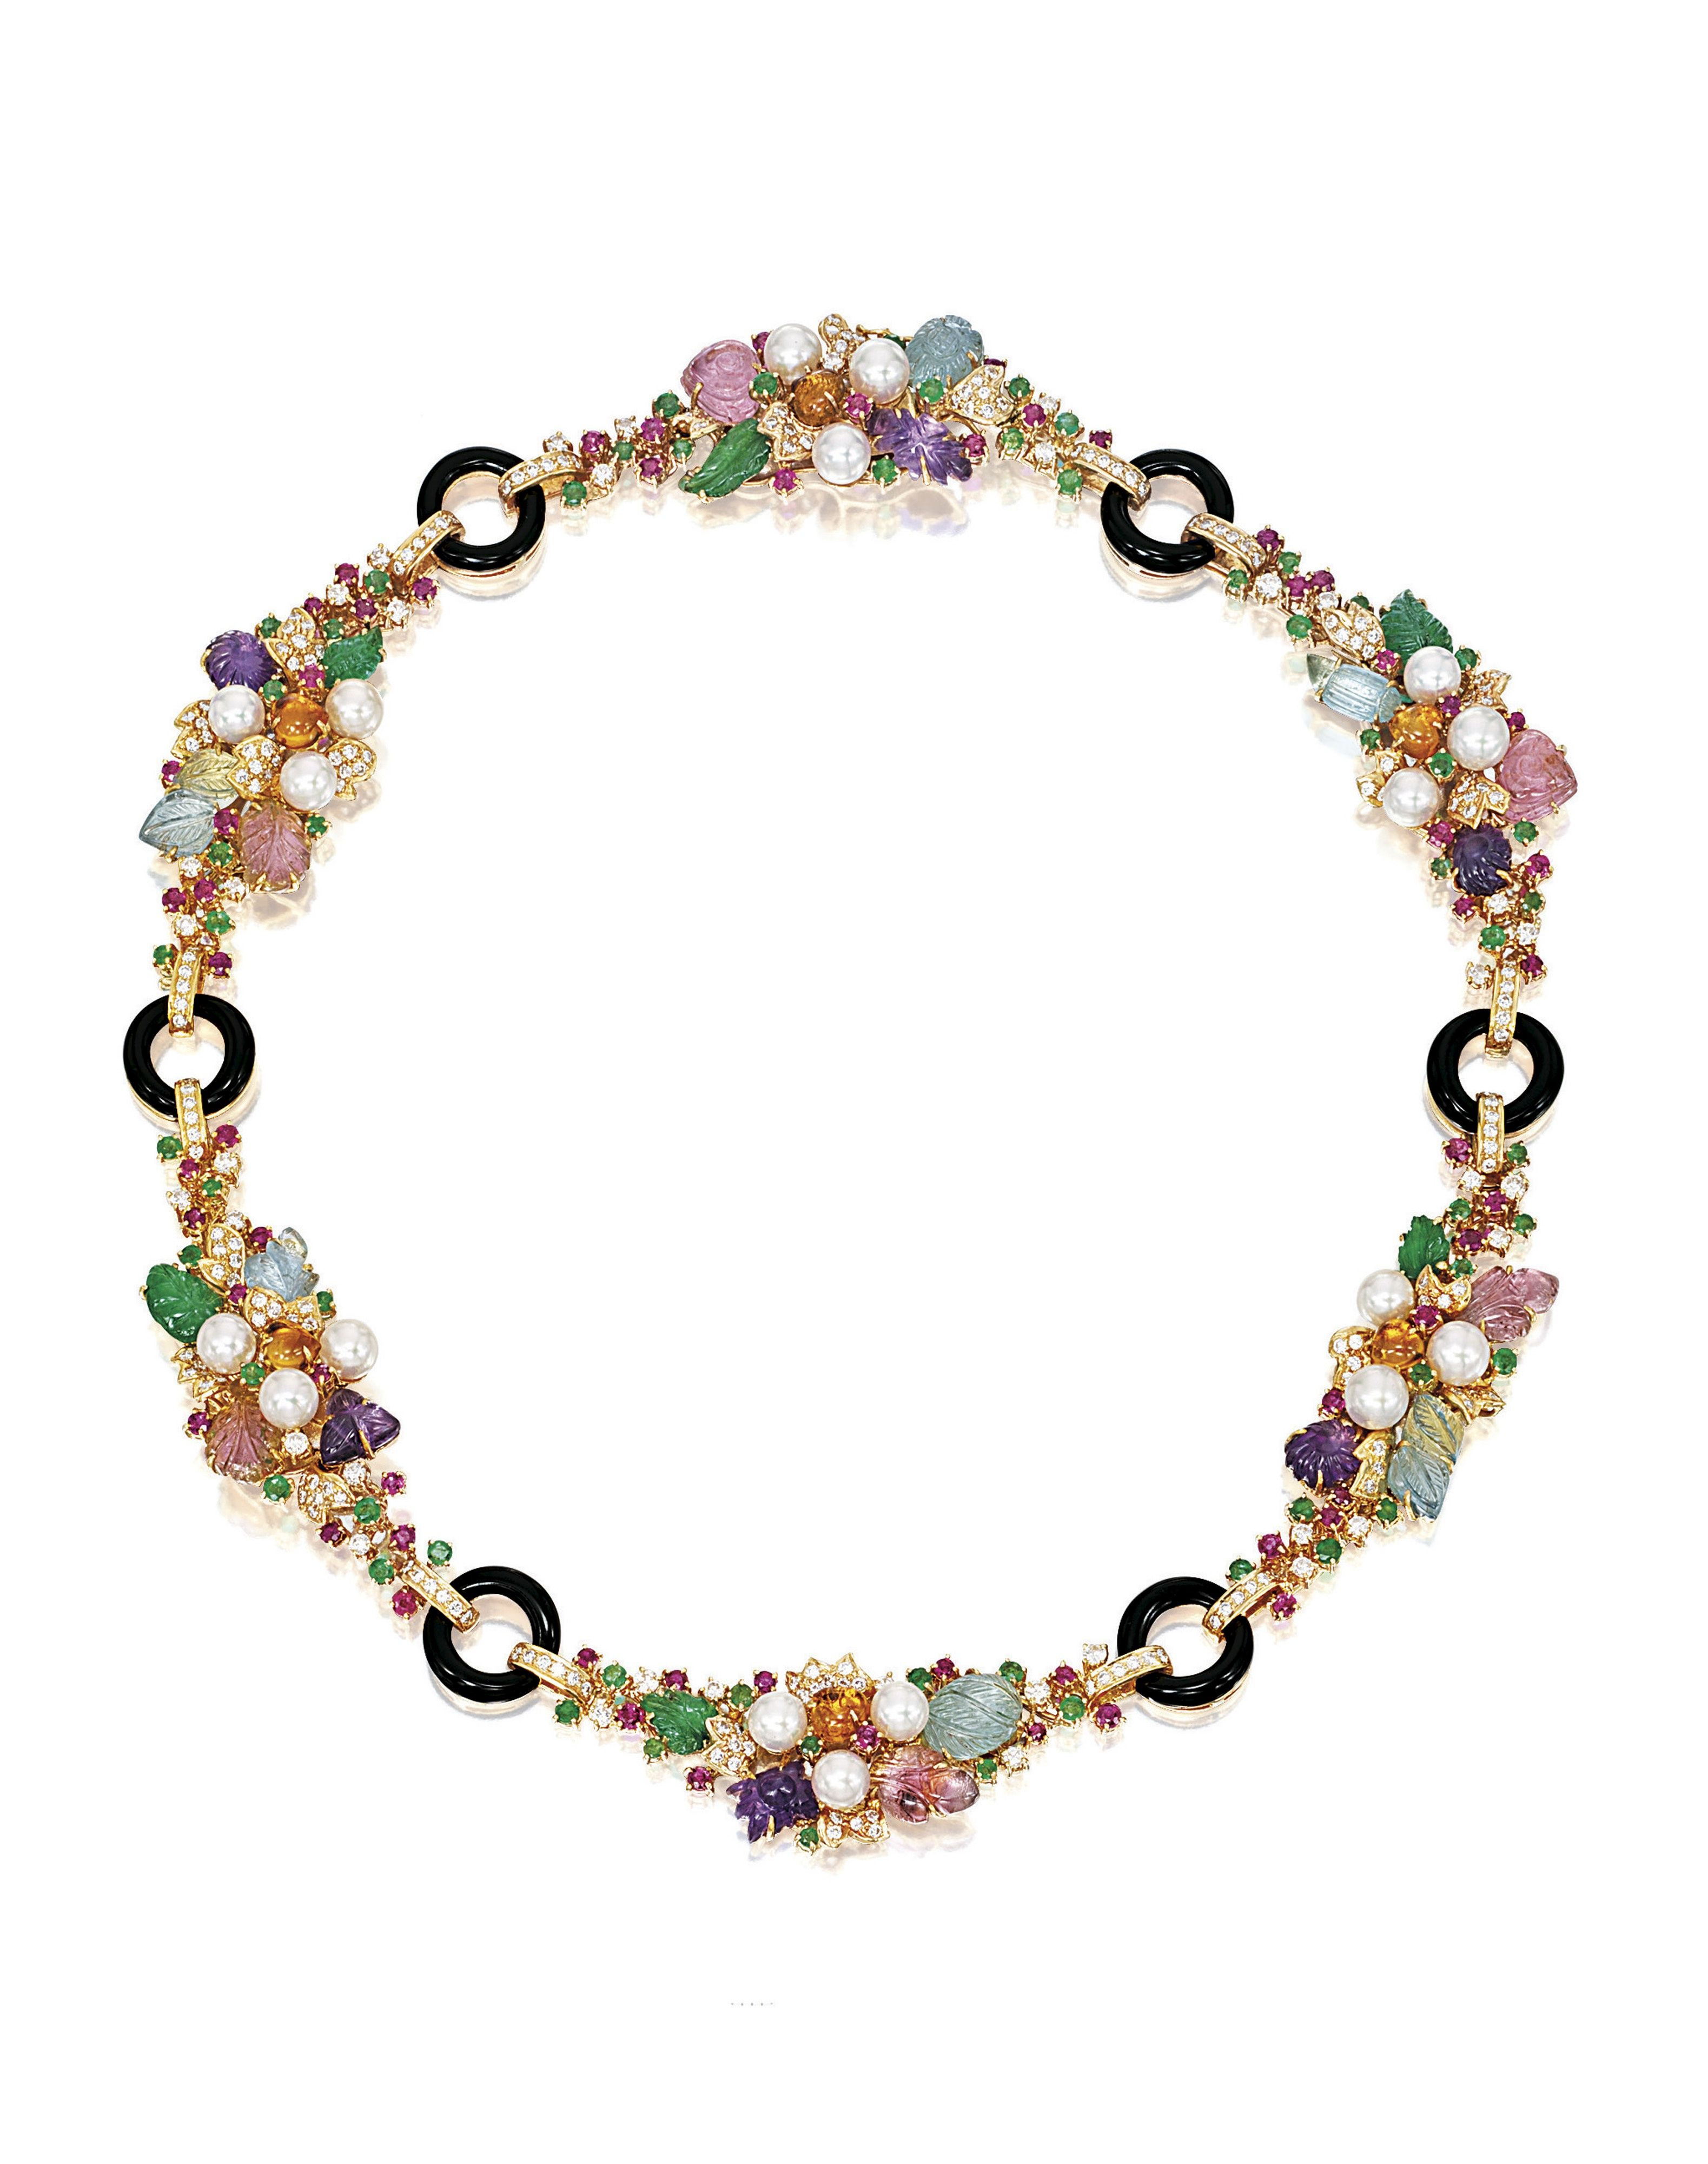 Gemset cultured pearl and diamond necklace of foliage design the